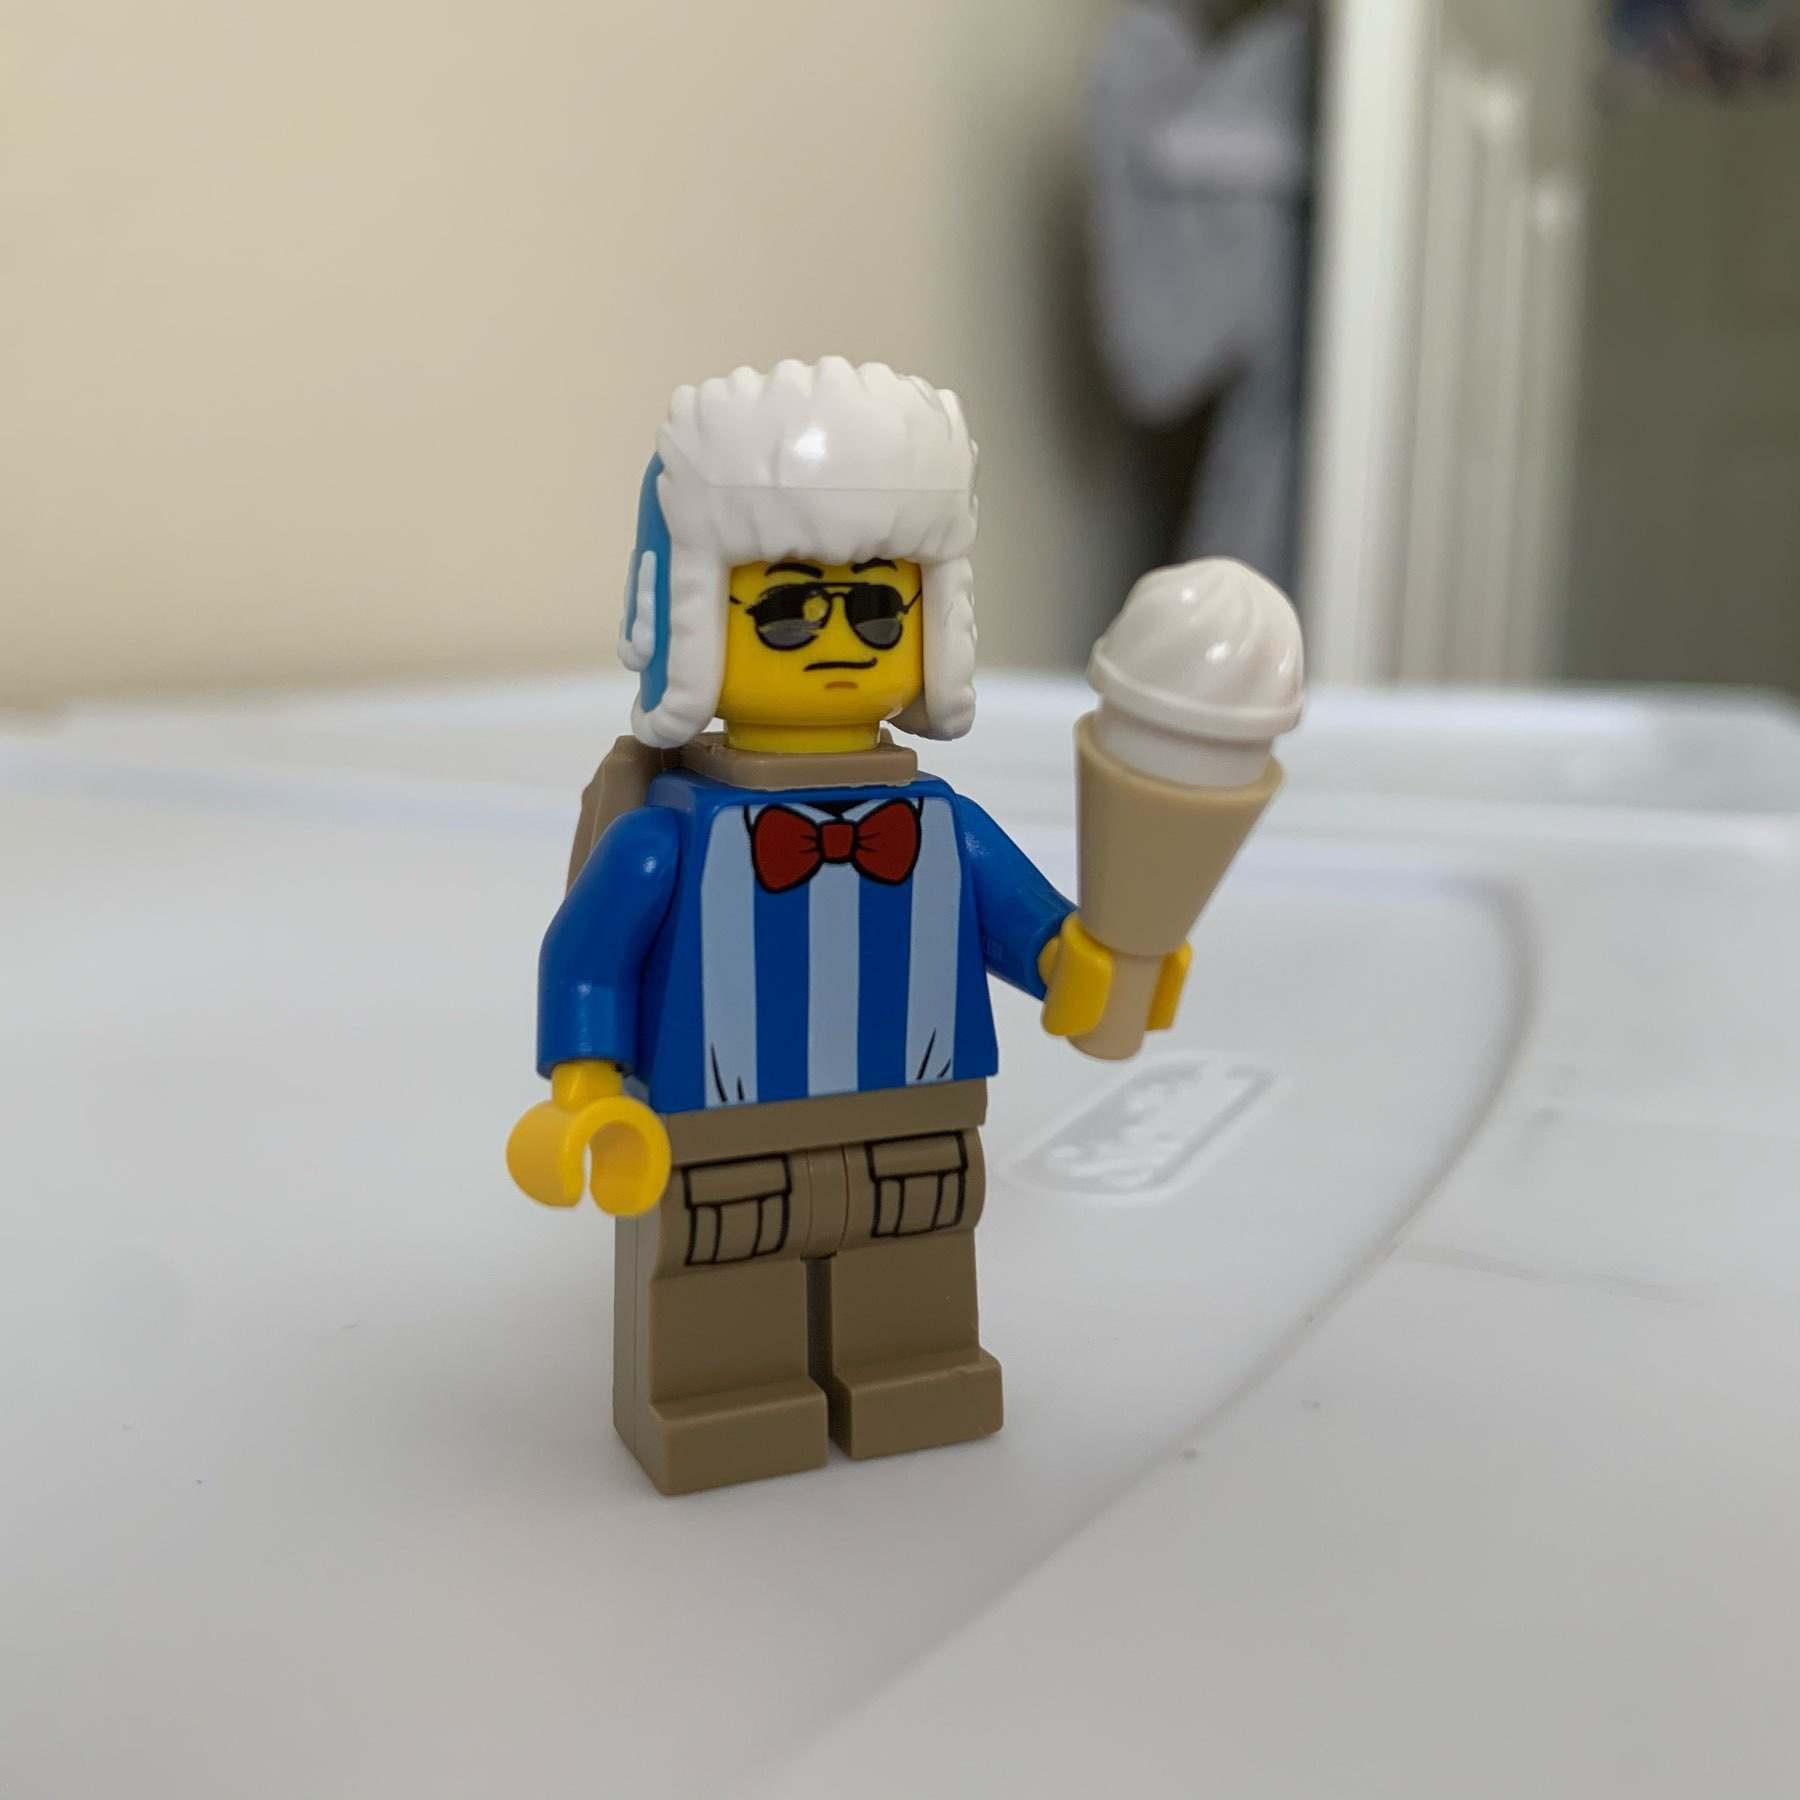 LEGO minifigure wearing blue shirt, red bowtie, sunglasses, backpack, winter hat, and holding an ice cream cone.